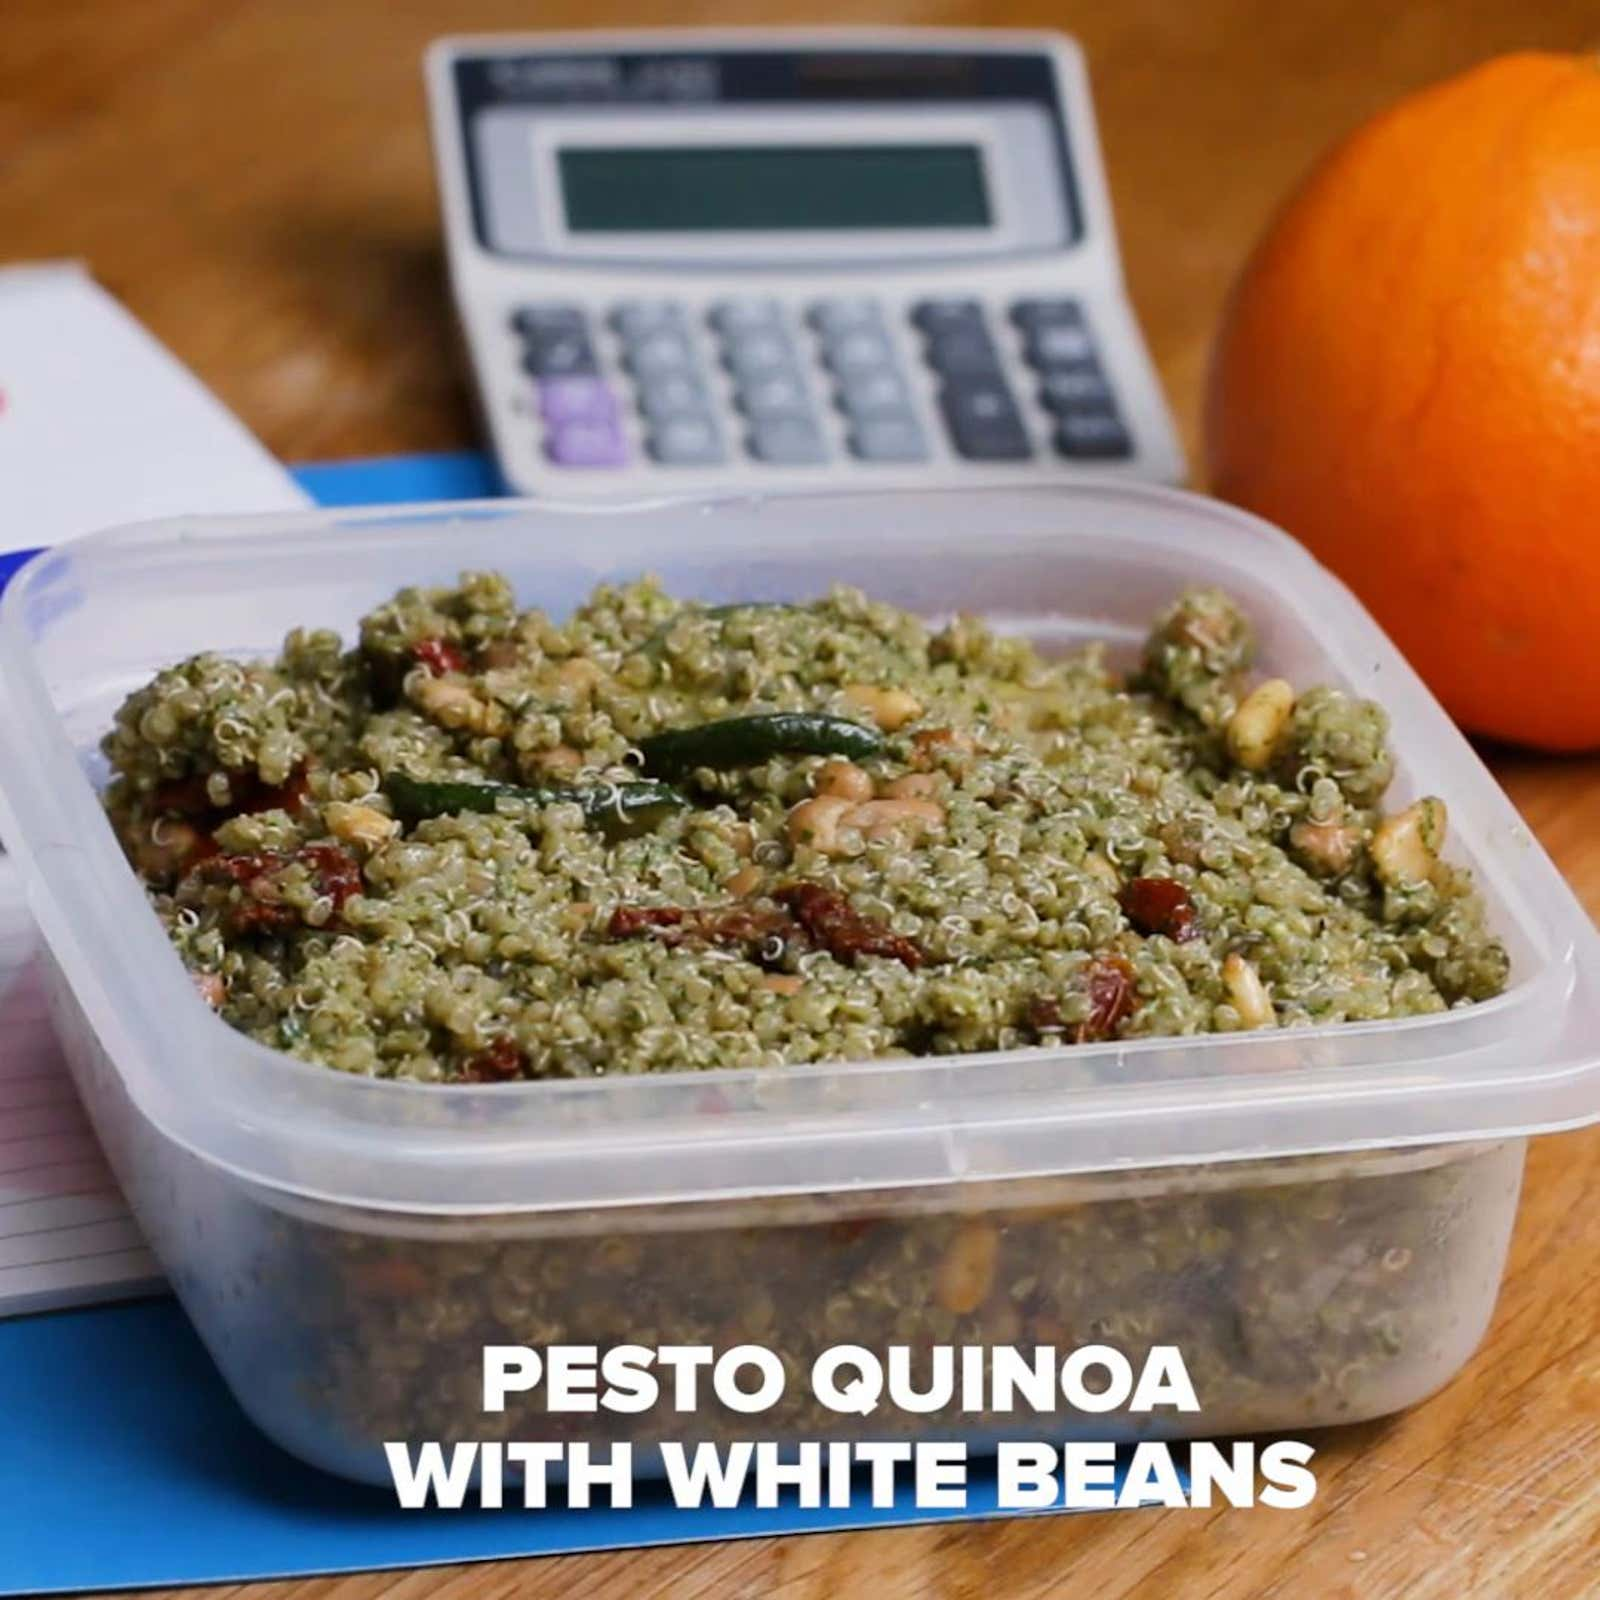 Pesto Quinoa With White Beans